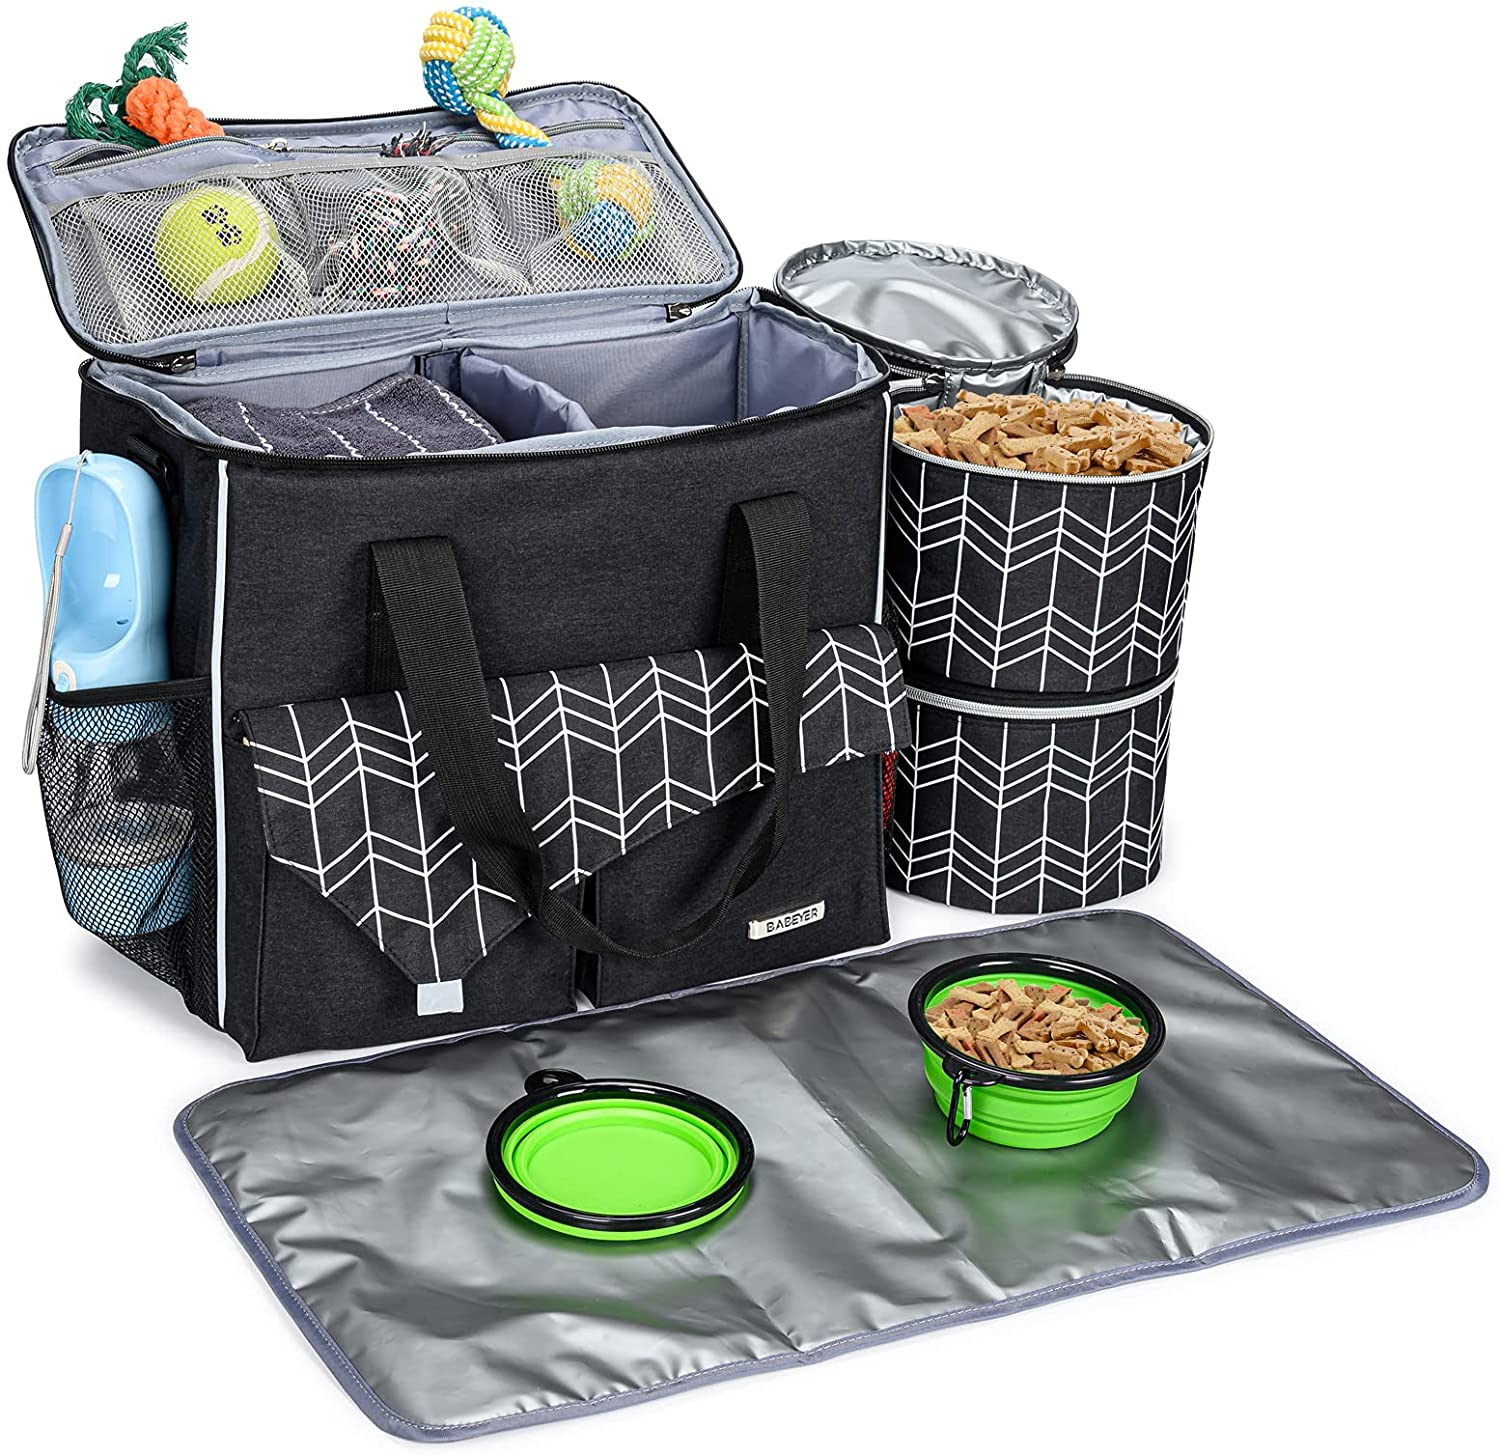 BABEYER Dog Travel Bag with Food Container Bag and Collapsible Bowl Included, Airline Approved Pet Supply Bag Great for Weekend Pets Travel-Black